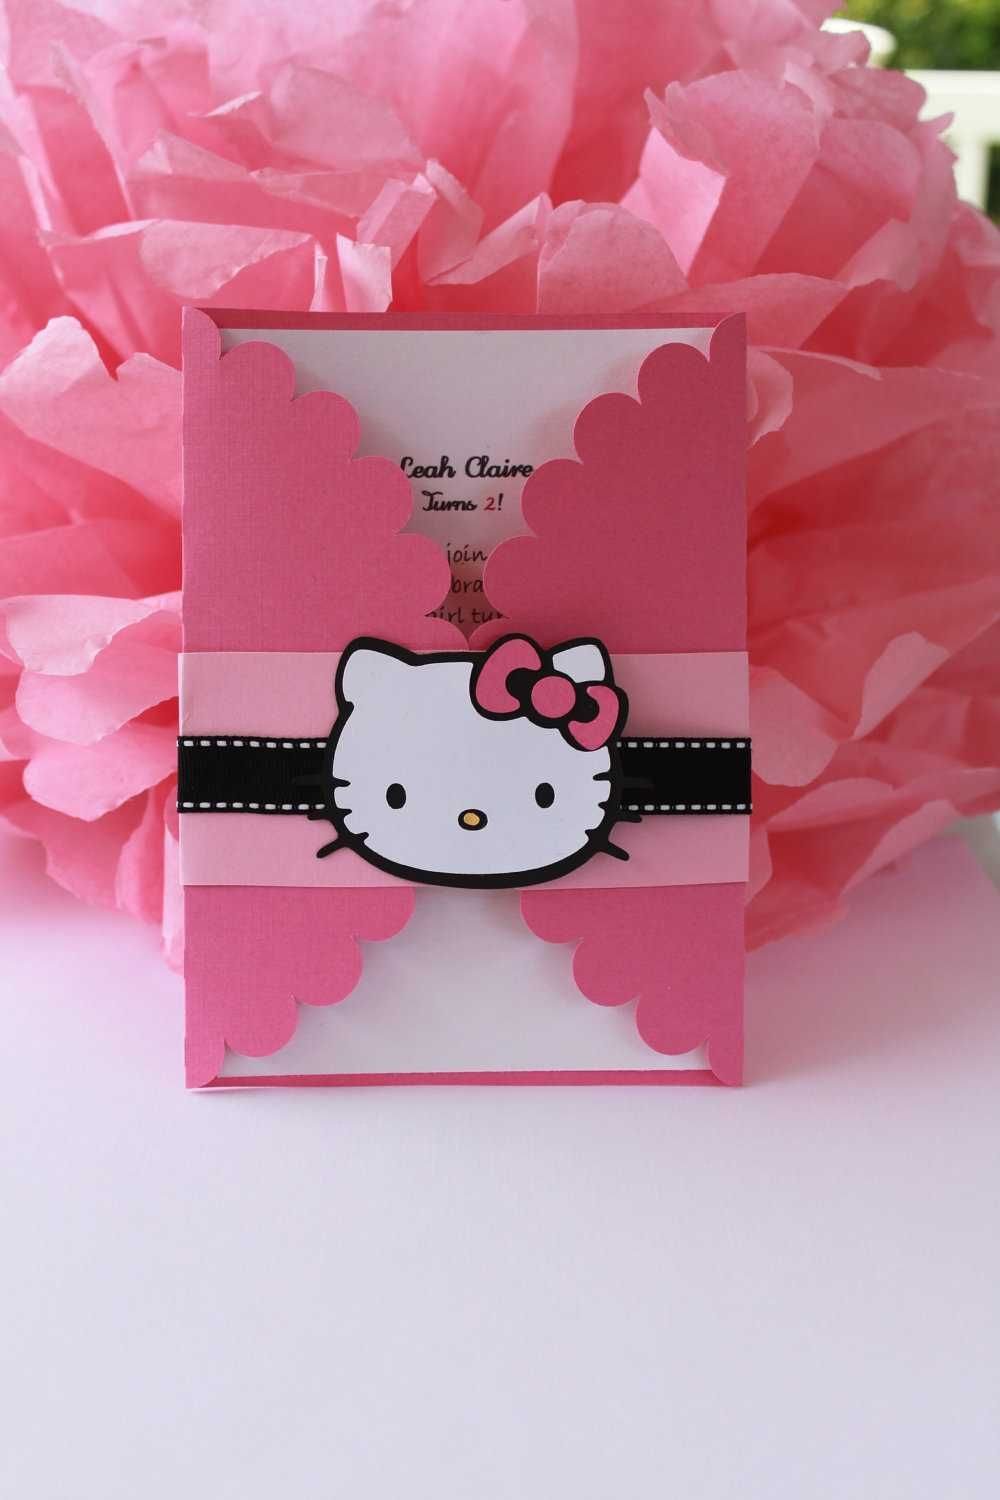 cute hello kitty invitations invitations ideas baby shower cute hello kitty invitations invitations ideas